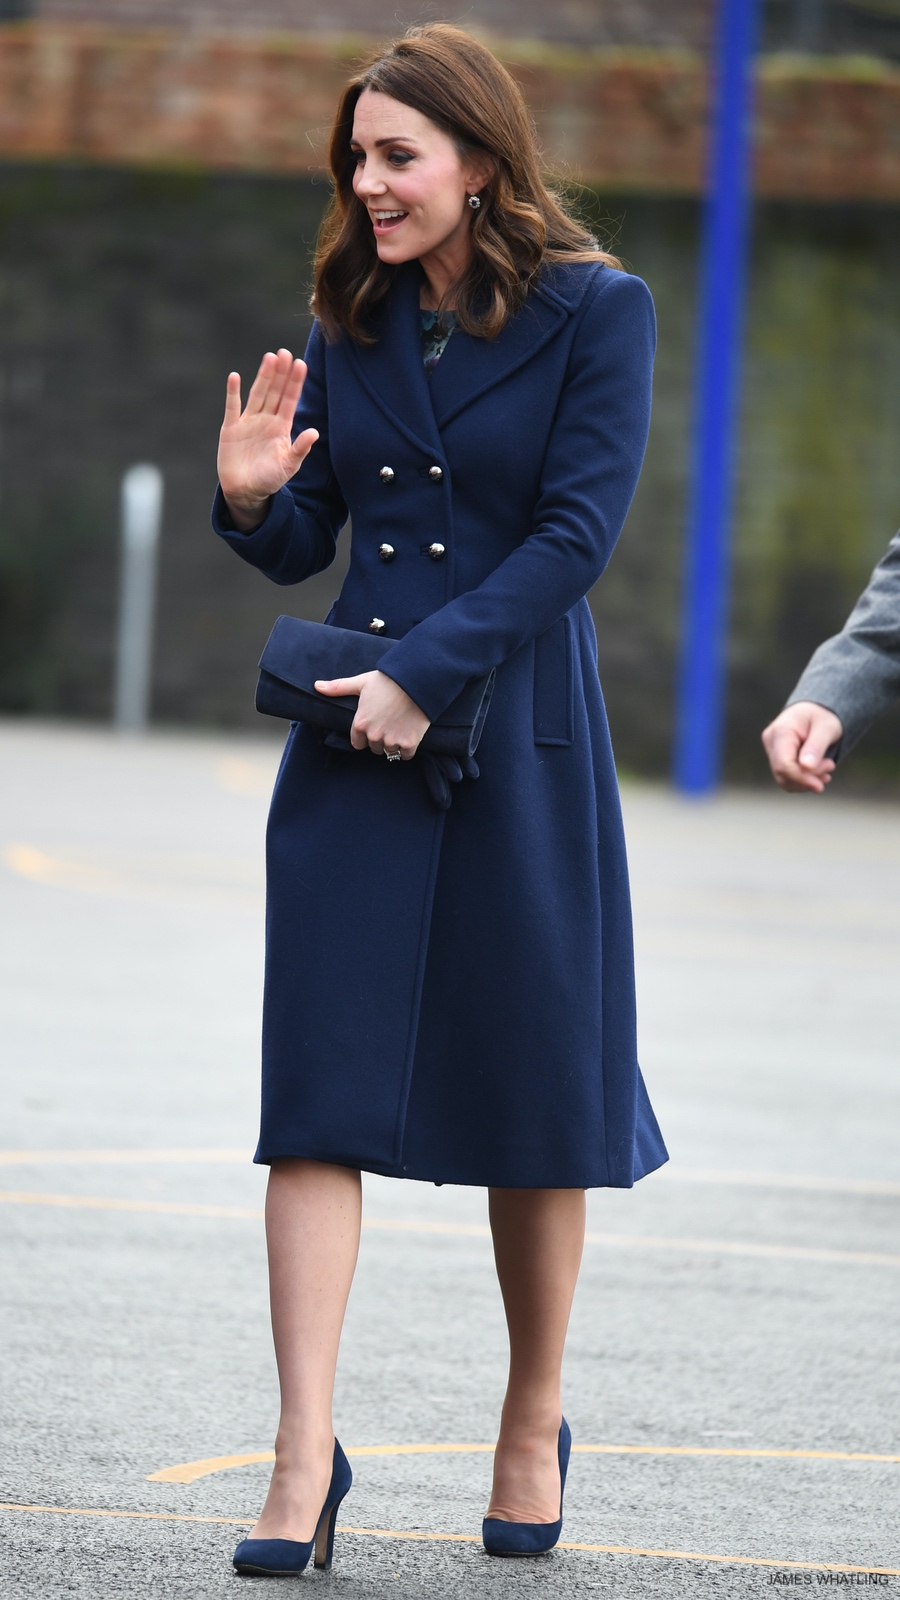 Kate Middleton wearing the Hobbs Gianna Coat and carrying her Stuart Weitzman clutch bag